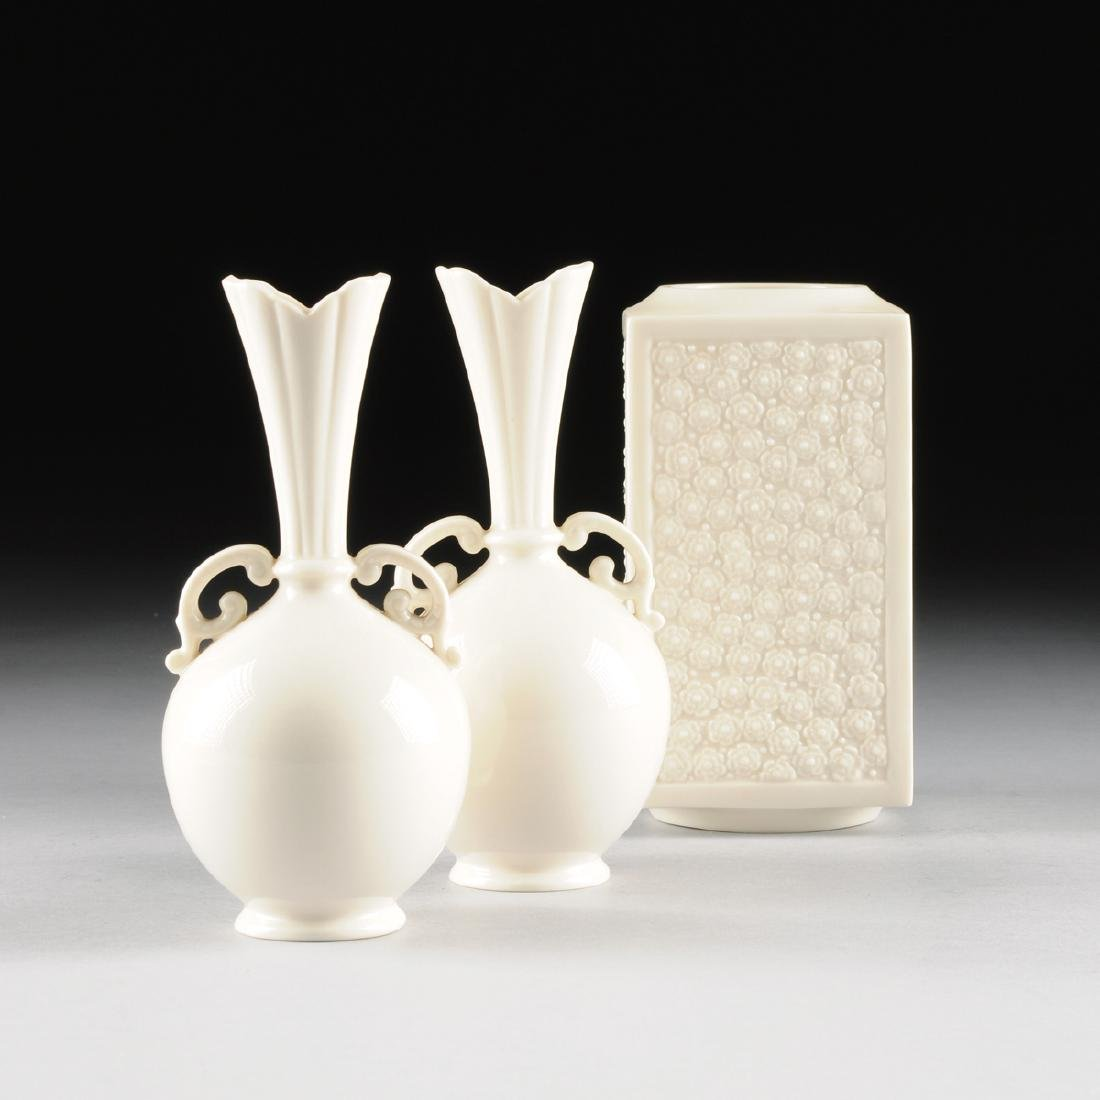 Pair of lenox creamware porcelain vases and a lenox a pair of lenox creamware porcelain vases and a lenox floridaeventfo Image collections